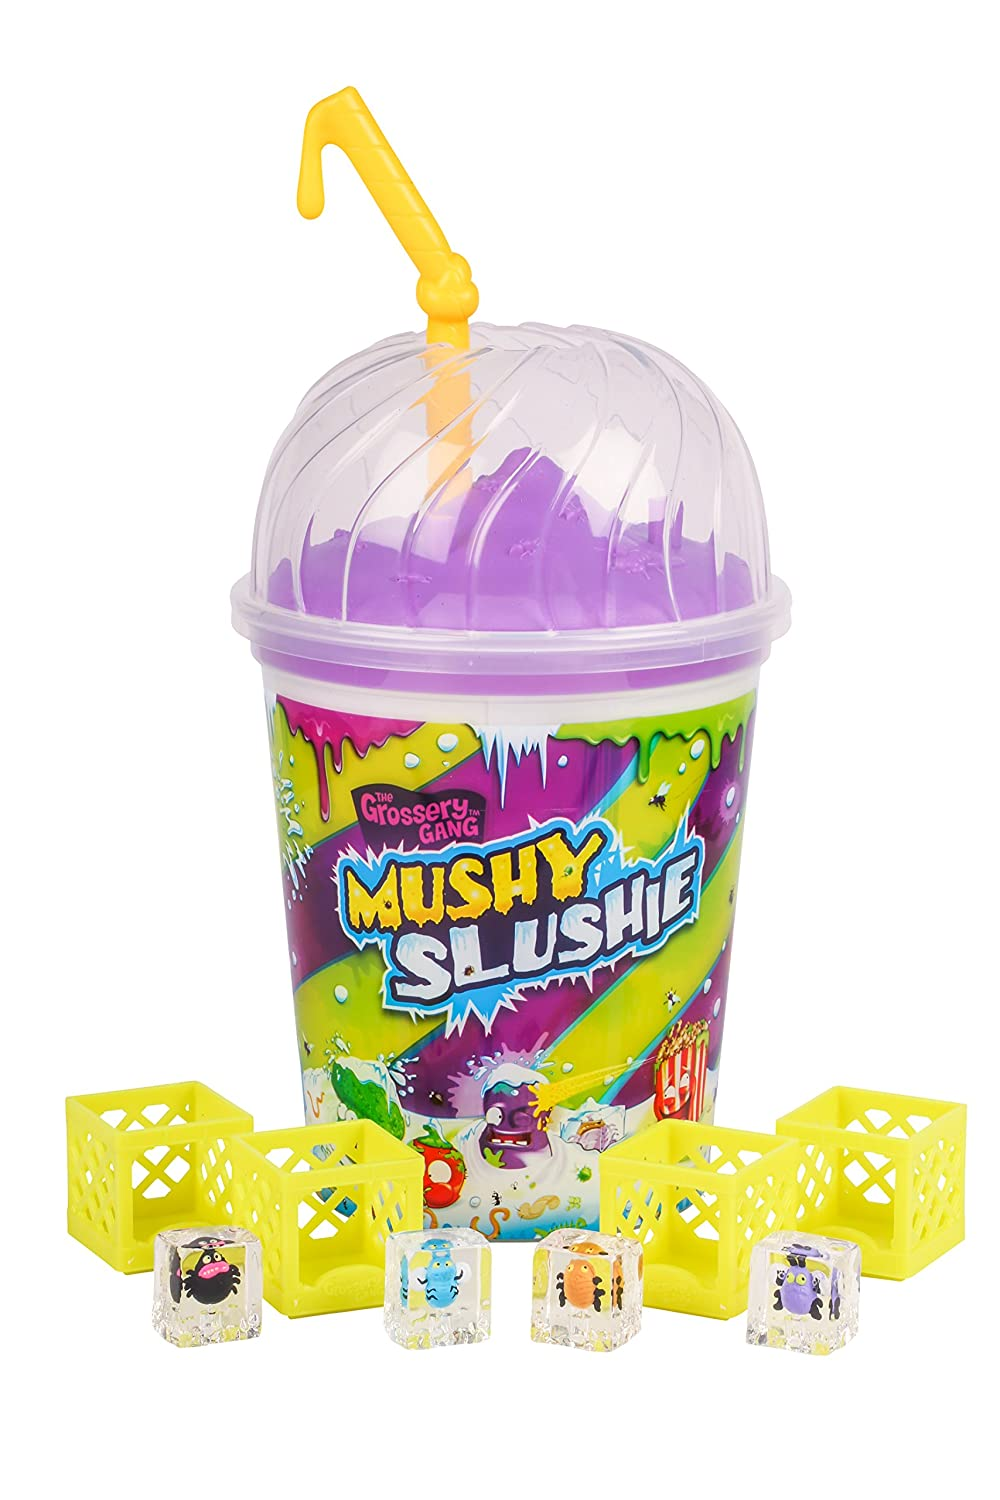 The Grossery Gang Mushy Slushie CollectorS Cup Moose Toys 69004